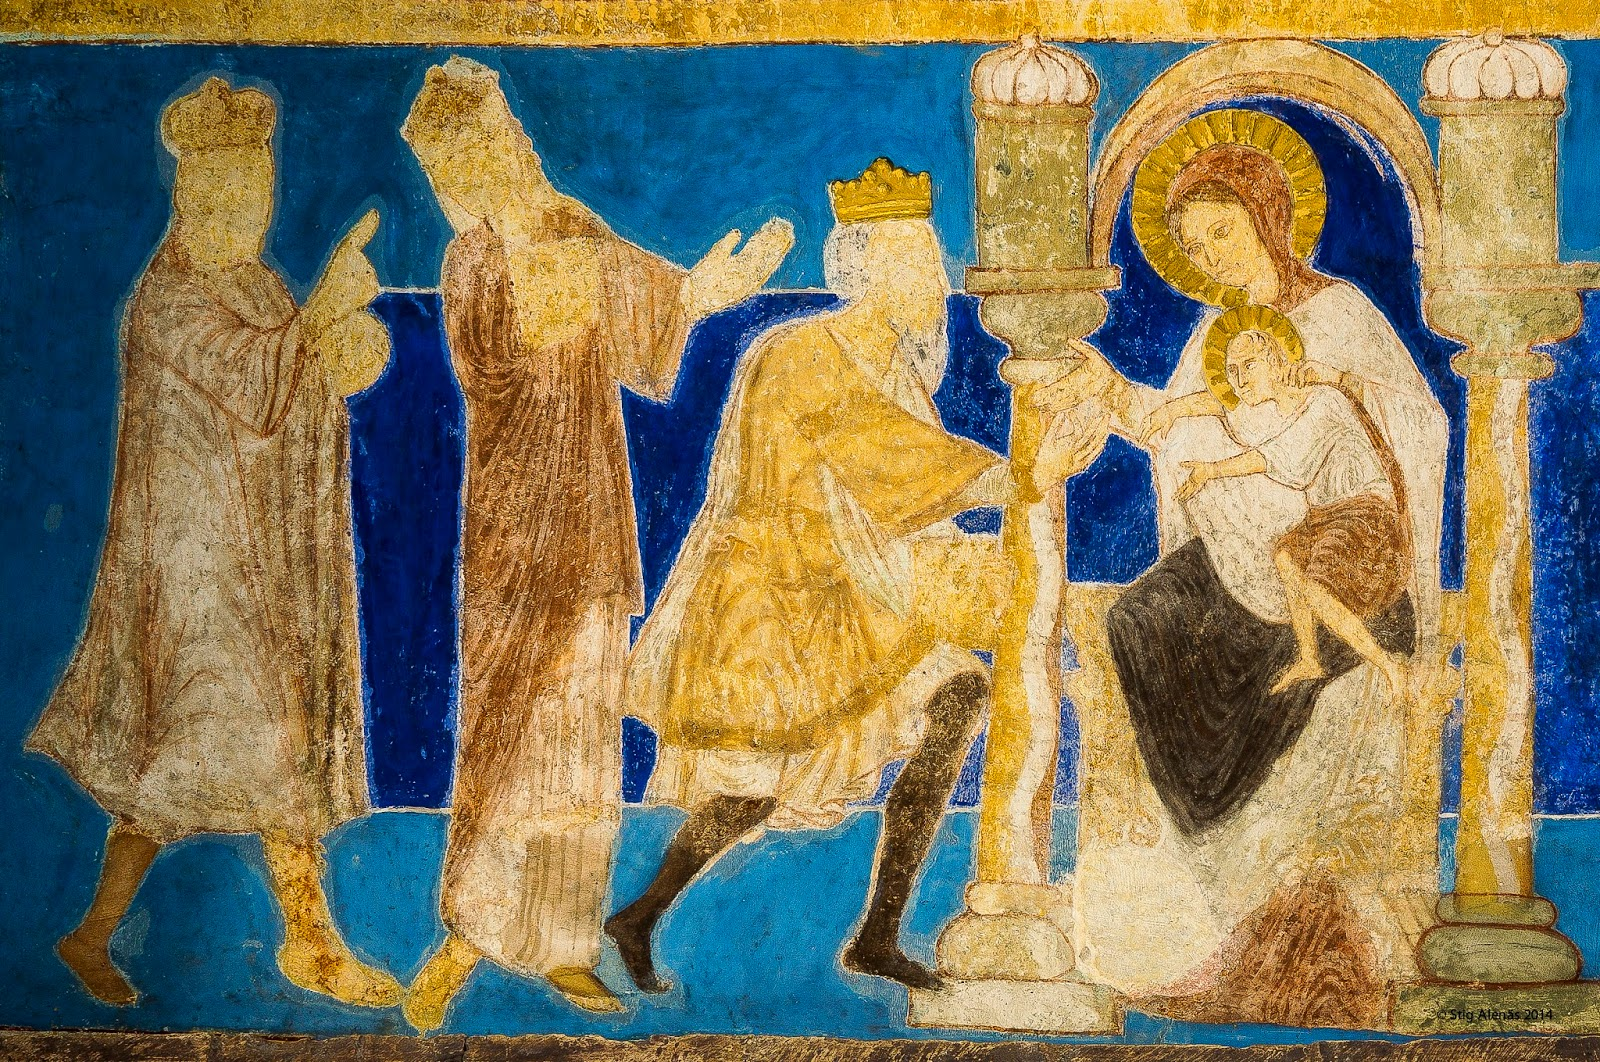 medieval, gaspar, epiphany, mural, wise, nativity, kings, worship, myrrh, christmas, editorial, sweden, three, church, wall, bible, men, gold, melchior, painting, ultramarine, fresco, denmark, holy, religion, byzantine, gifts, gothic, romanesque, wall painting, lapis lazuli, wi semen, wall-painting, balthasar, bjaresjo, https://www.shutterstock.com/image-photo/romanesque-fresco-holy-kings-bring-their-531577681